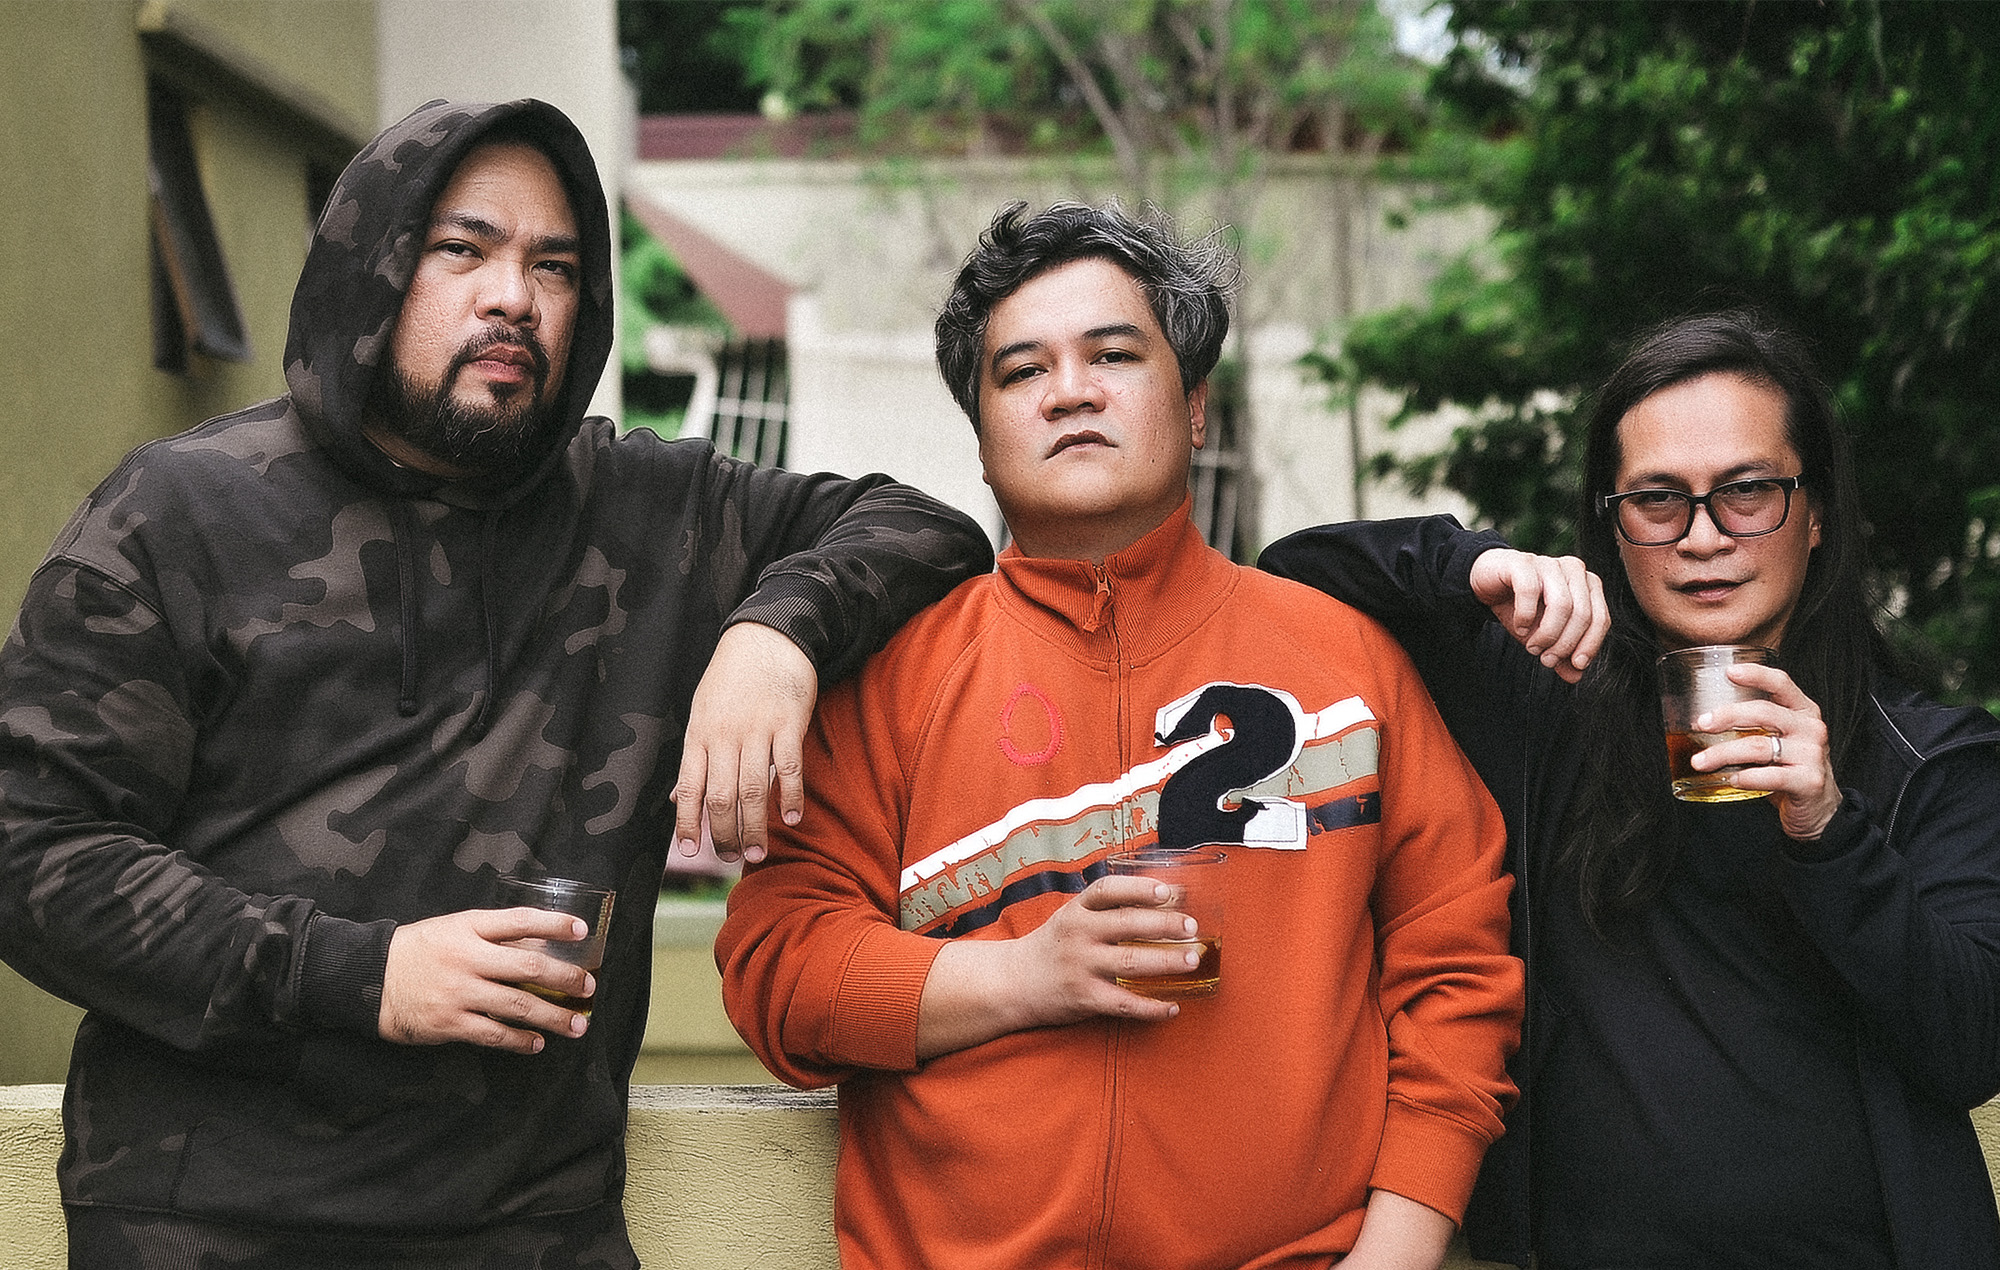 Filipino garage rock band The Bernadettes share 'Worthless Beautiful', first song in 11 years | NME